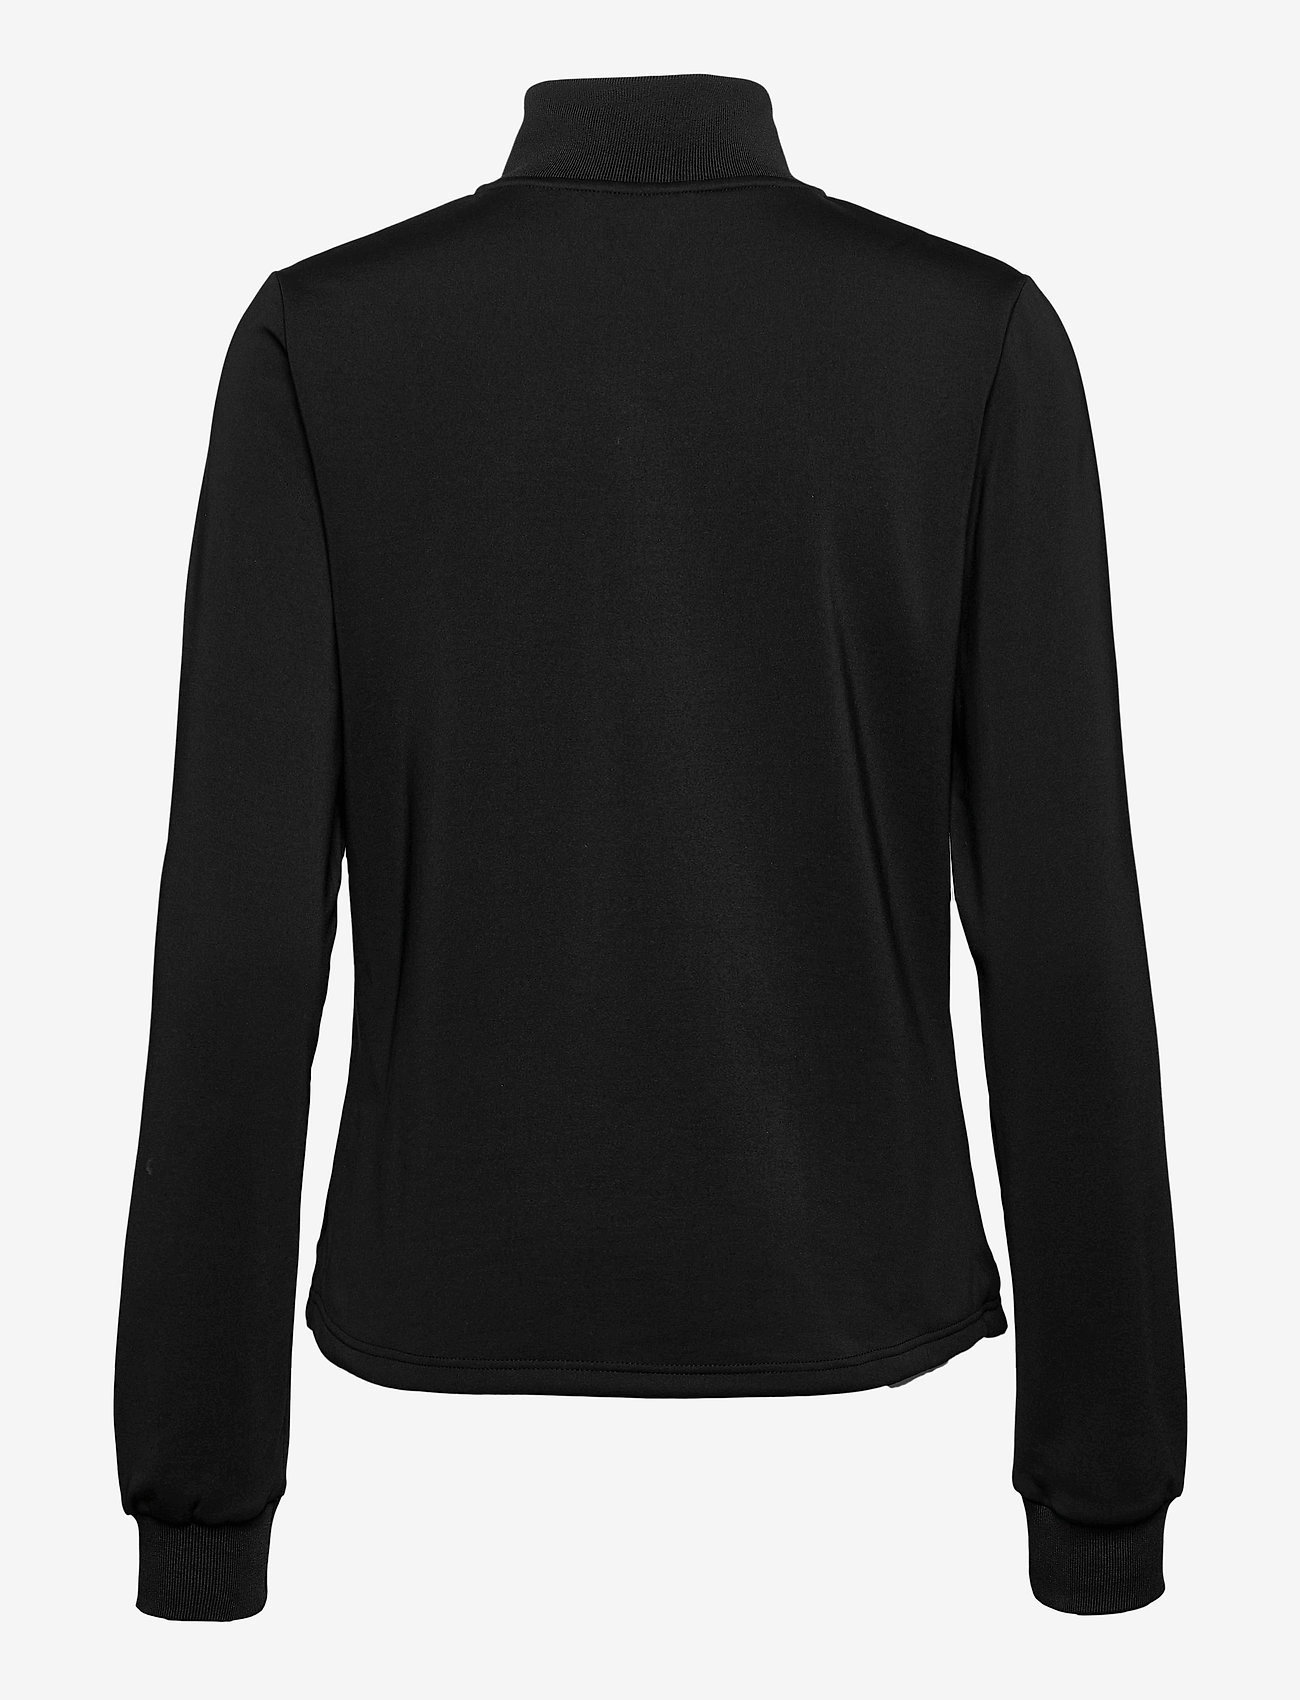 AIM'N - Boost Sweatshirt - svetarit - black - 1